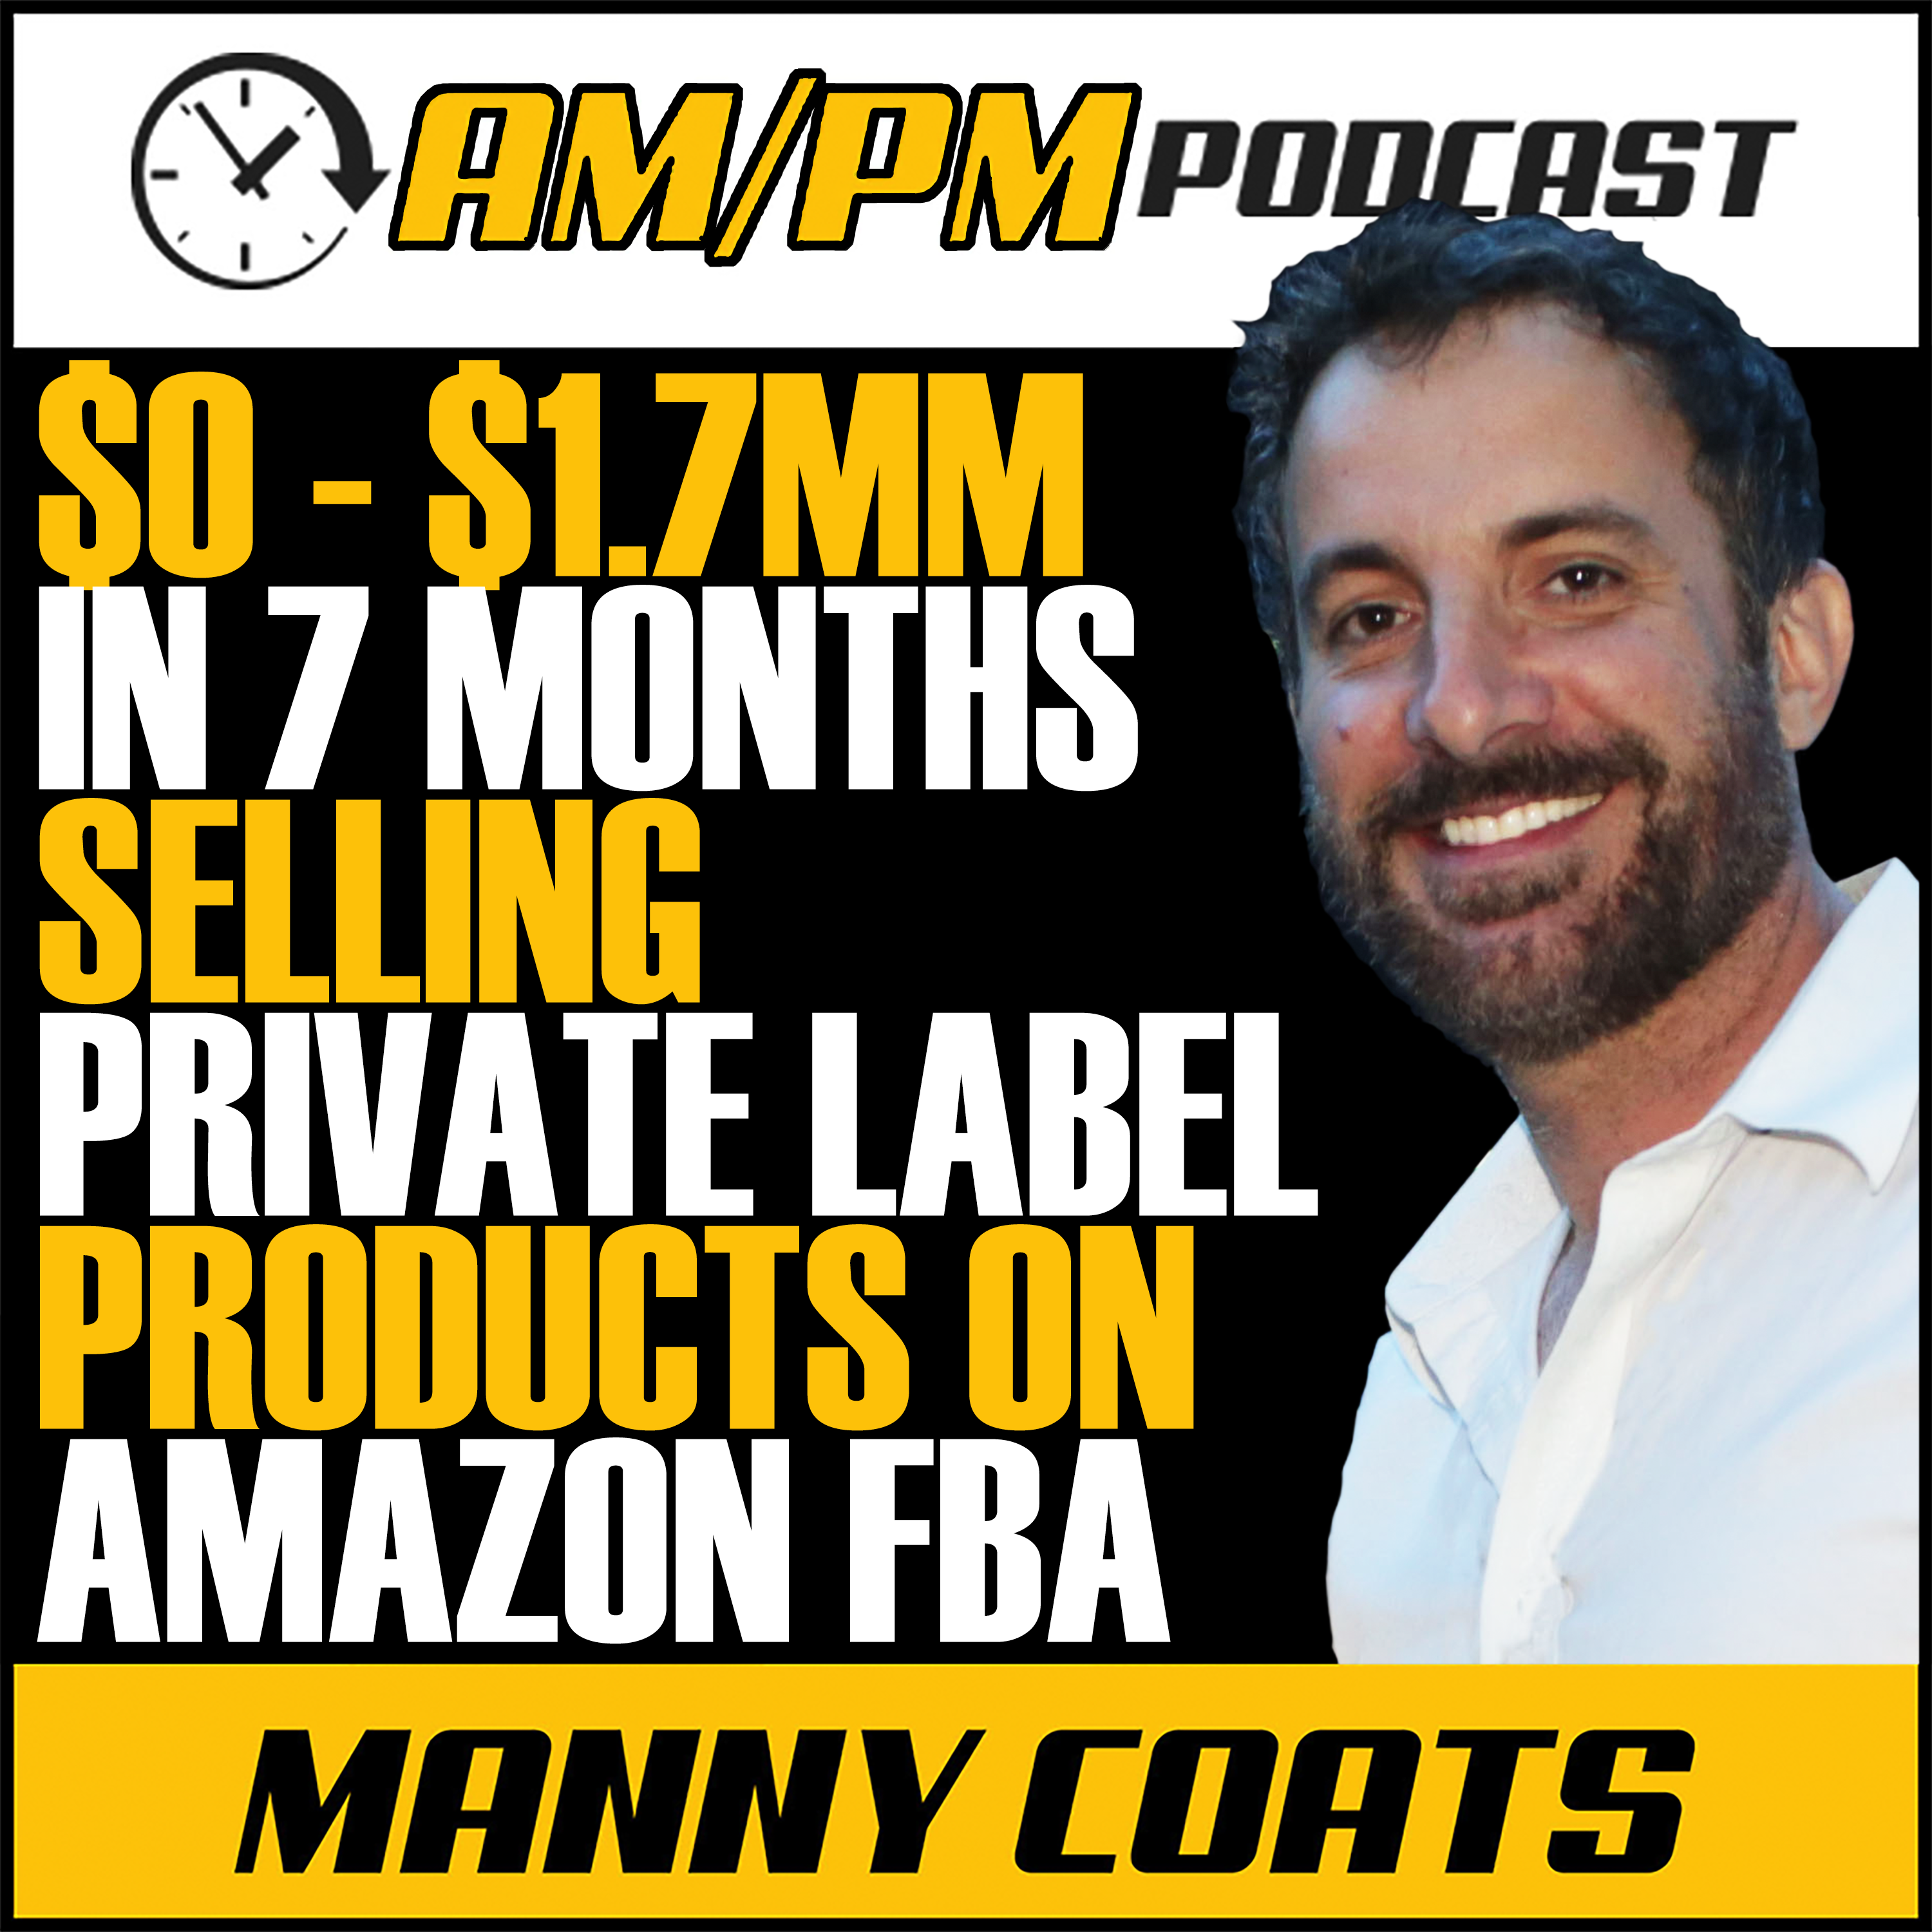 AM/PM Podcast: How to Sell Private Label Products on Amazon FBA with Manny Coats